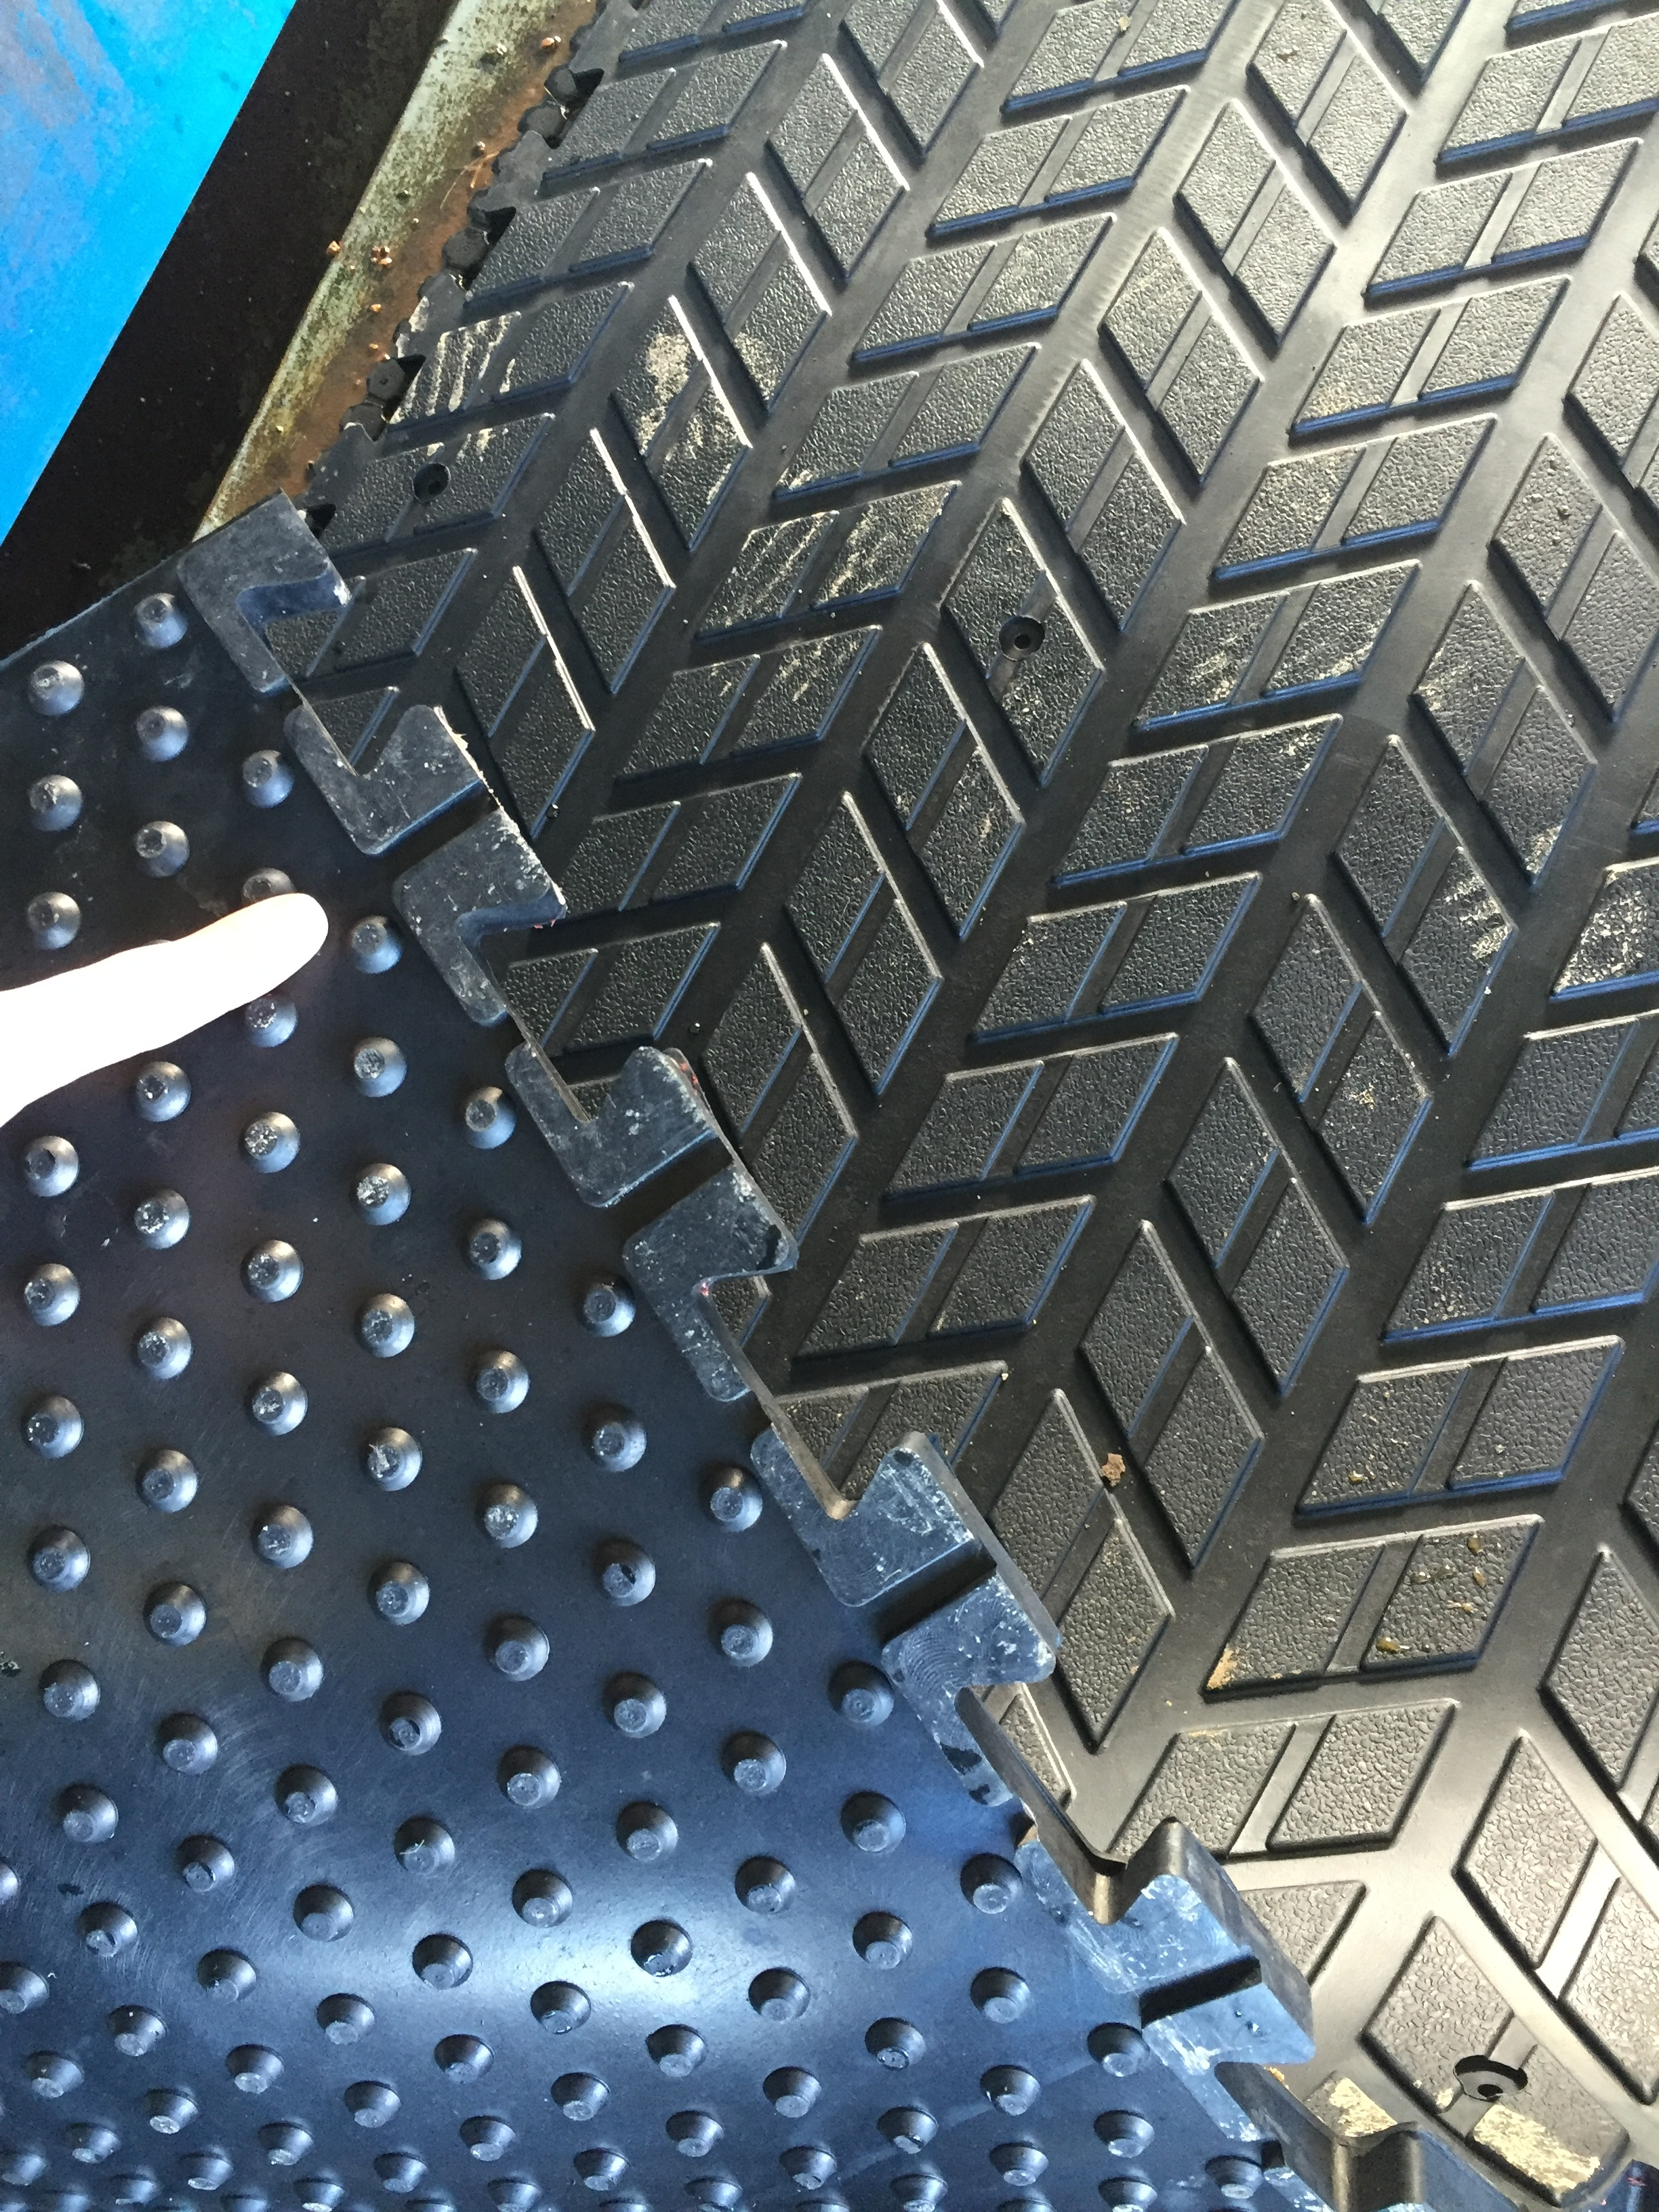 Stud underside for give and softness underfoot and interlocking edge and drainage points